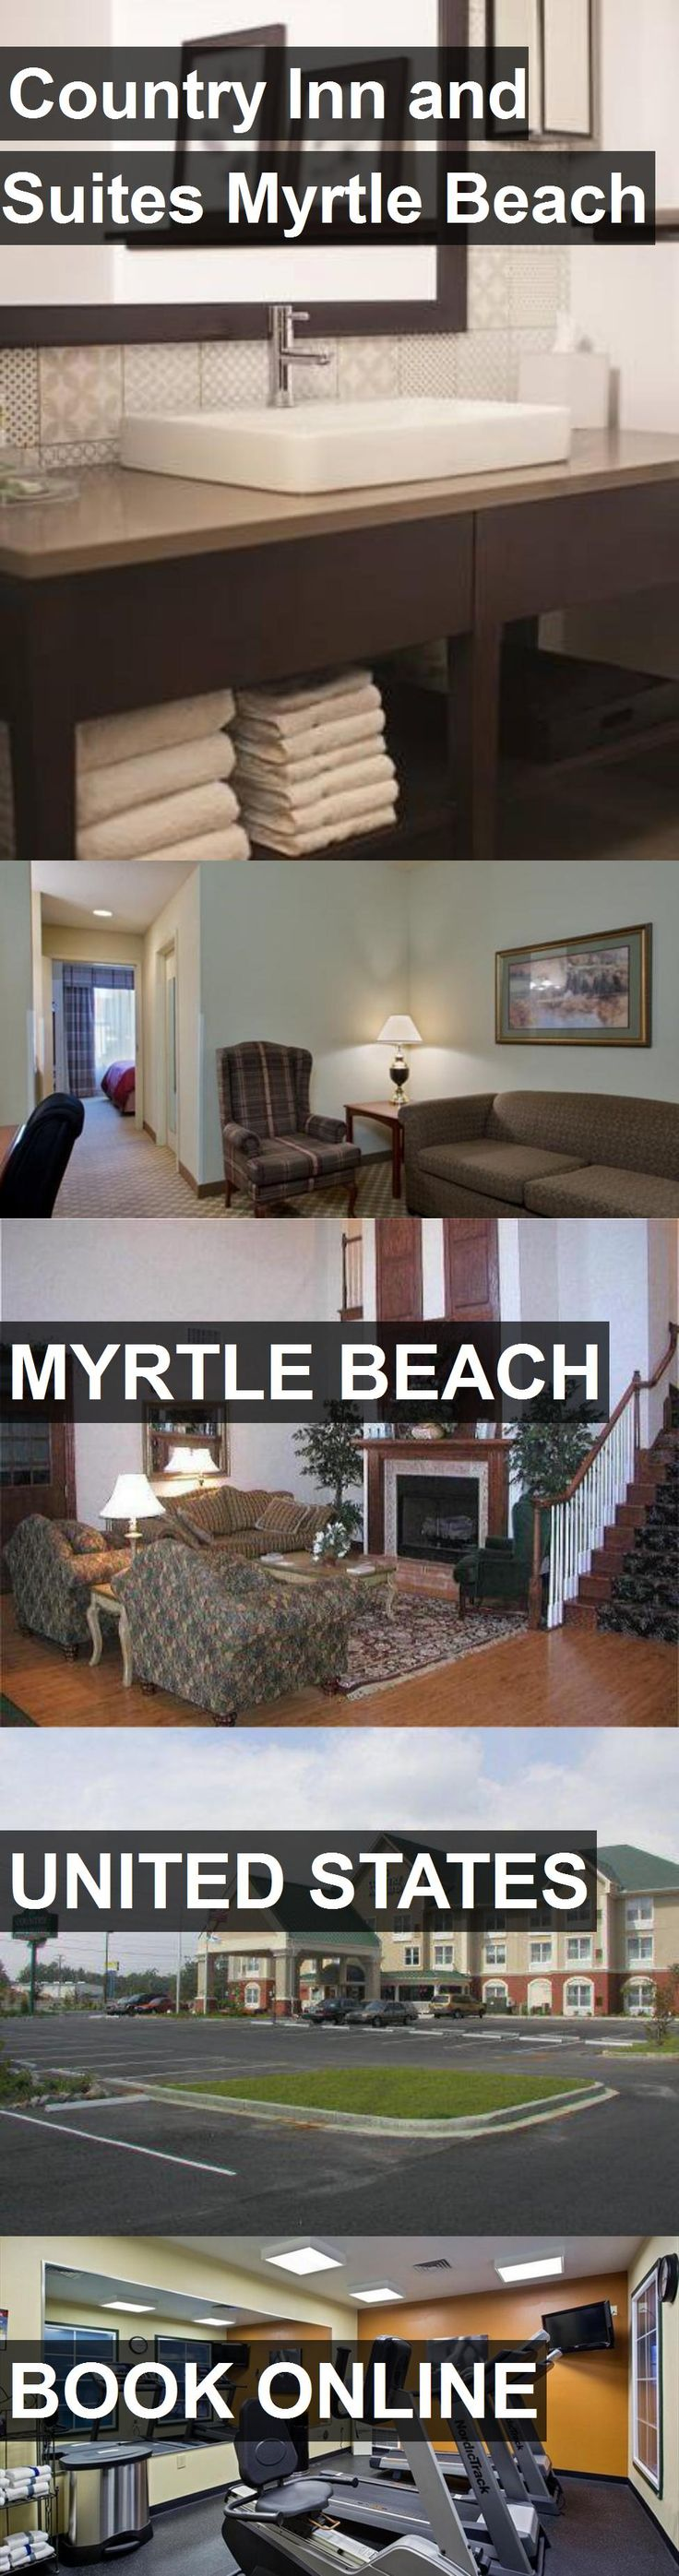 Hotel Country Inn and Suites Myrtle Beach in Myrtle Beach, United States. For more information, photos, reviews and best prices please follow the link. #UnitedStates #MyrtleBeach #travel #vacation #hotel